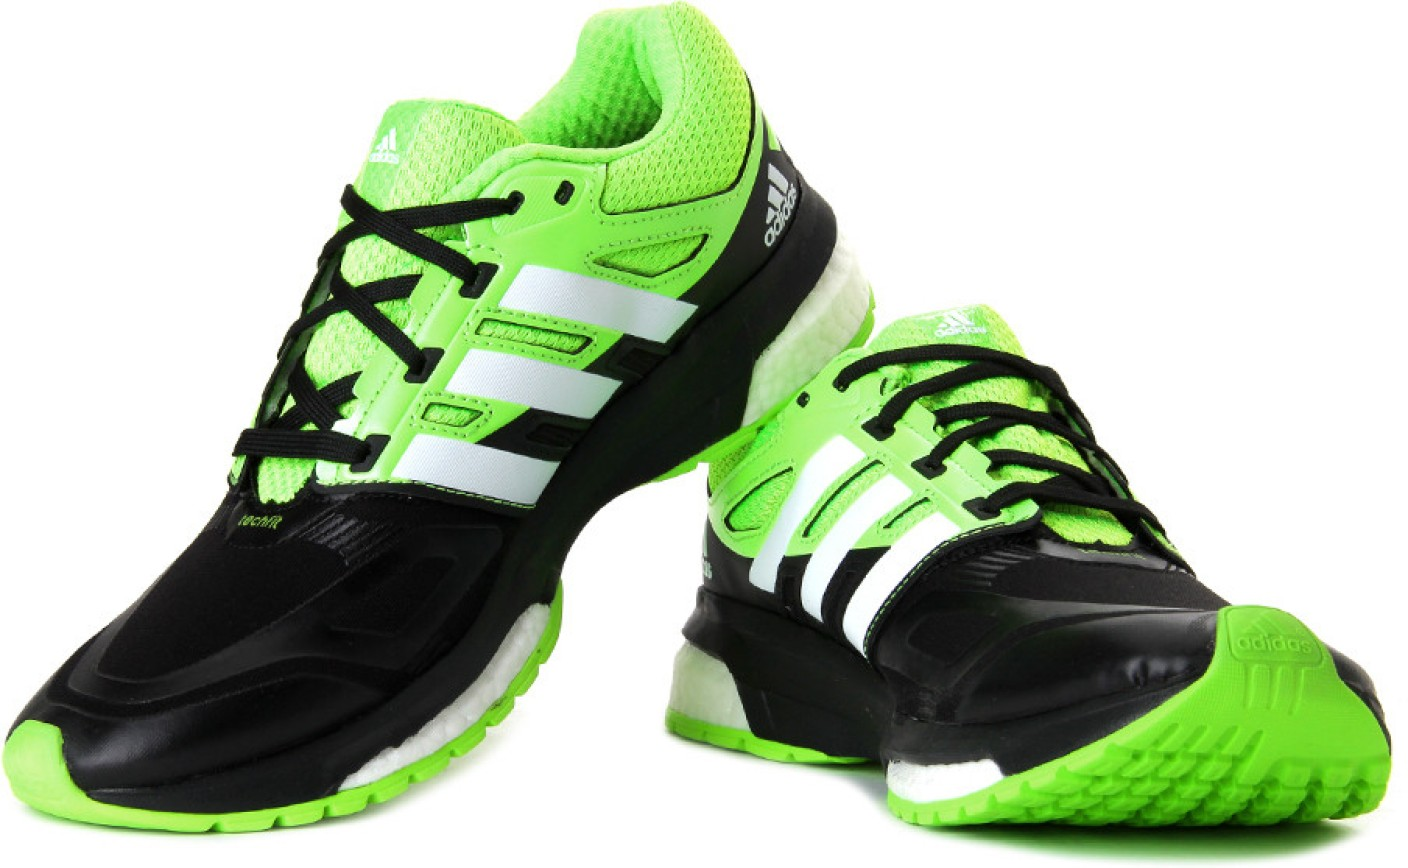 Black And White Adidas Running Shoes Green Tip